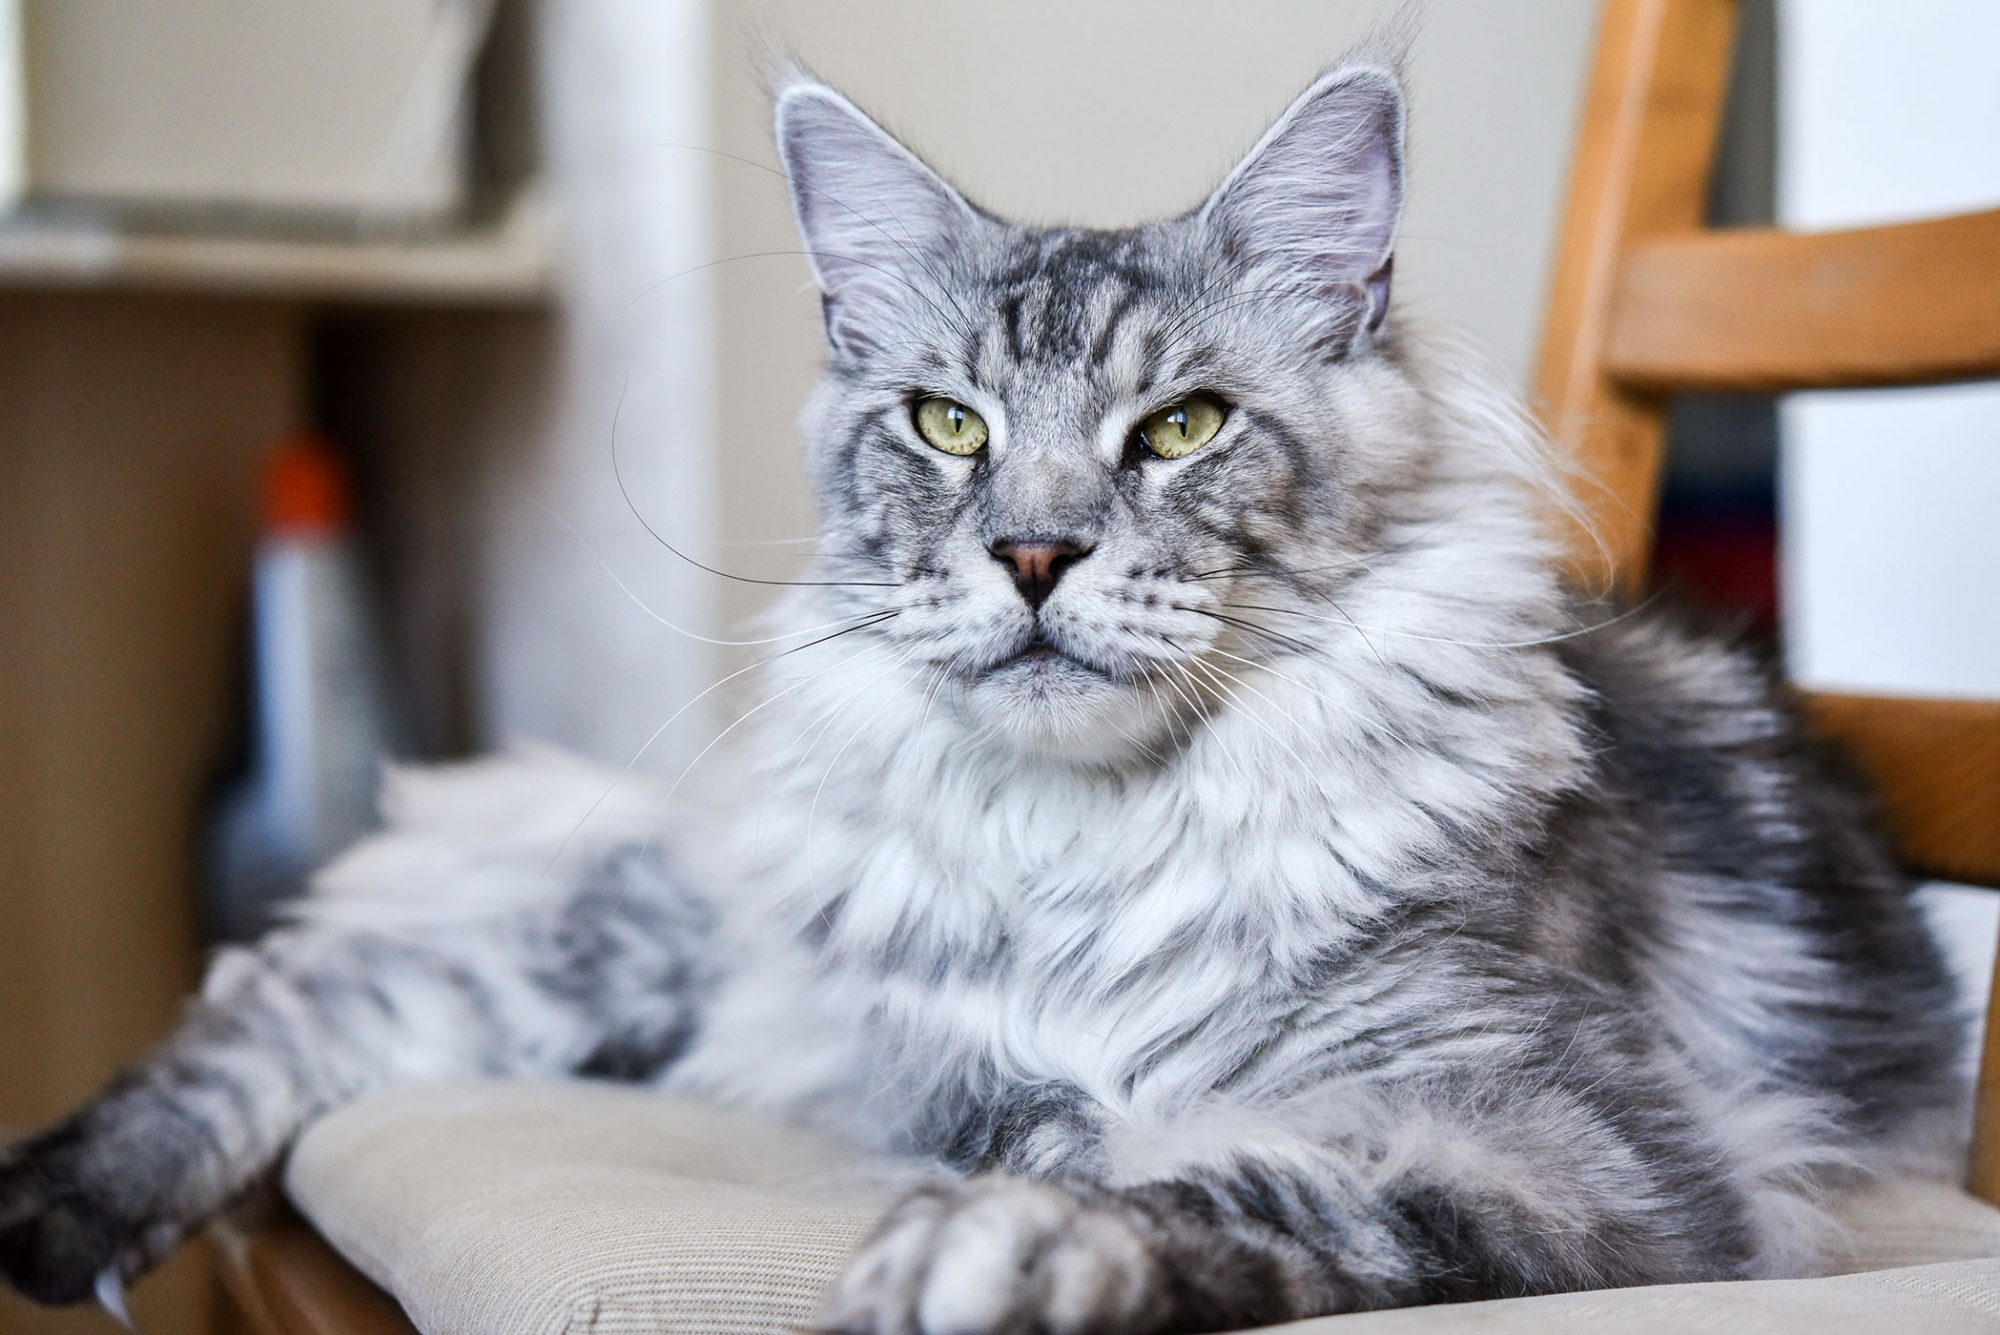 gray-and-white Maine coon cat lounging